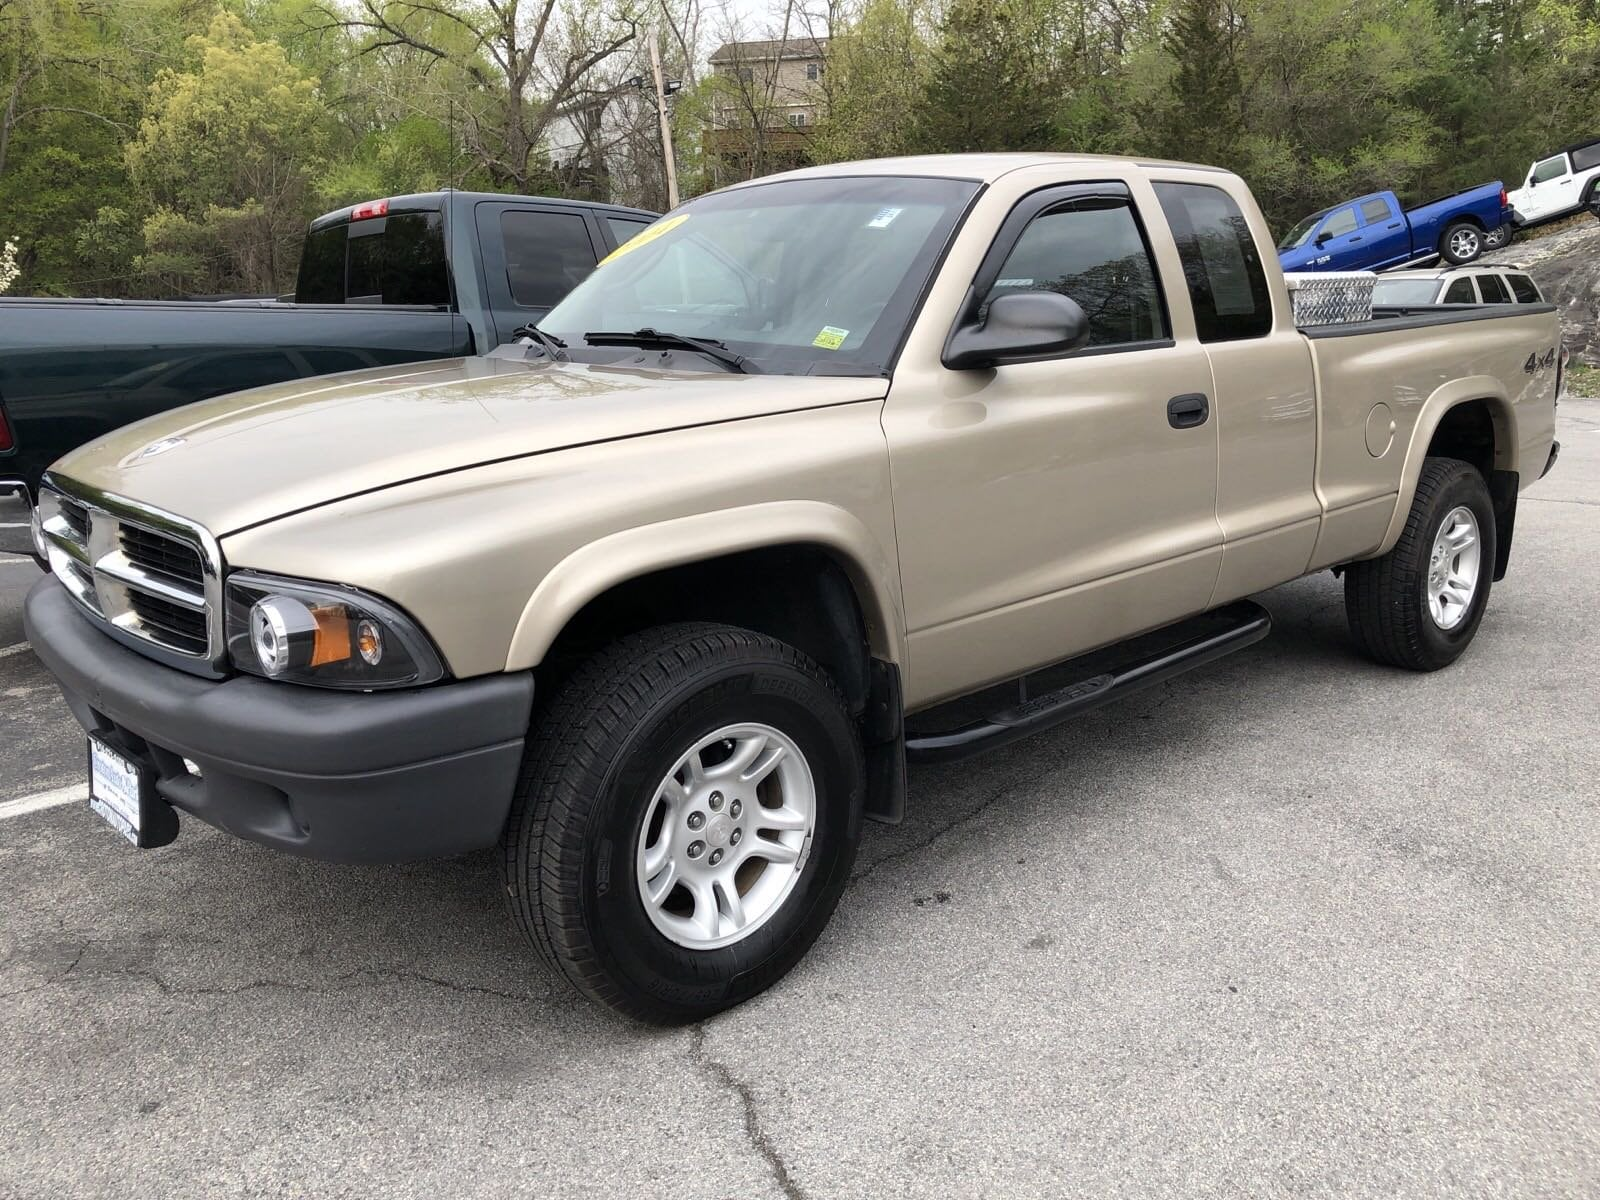 2004 Dodge Dakota Club Cab 131 WB 4WD Base